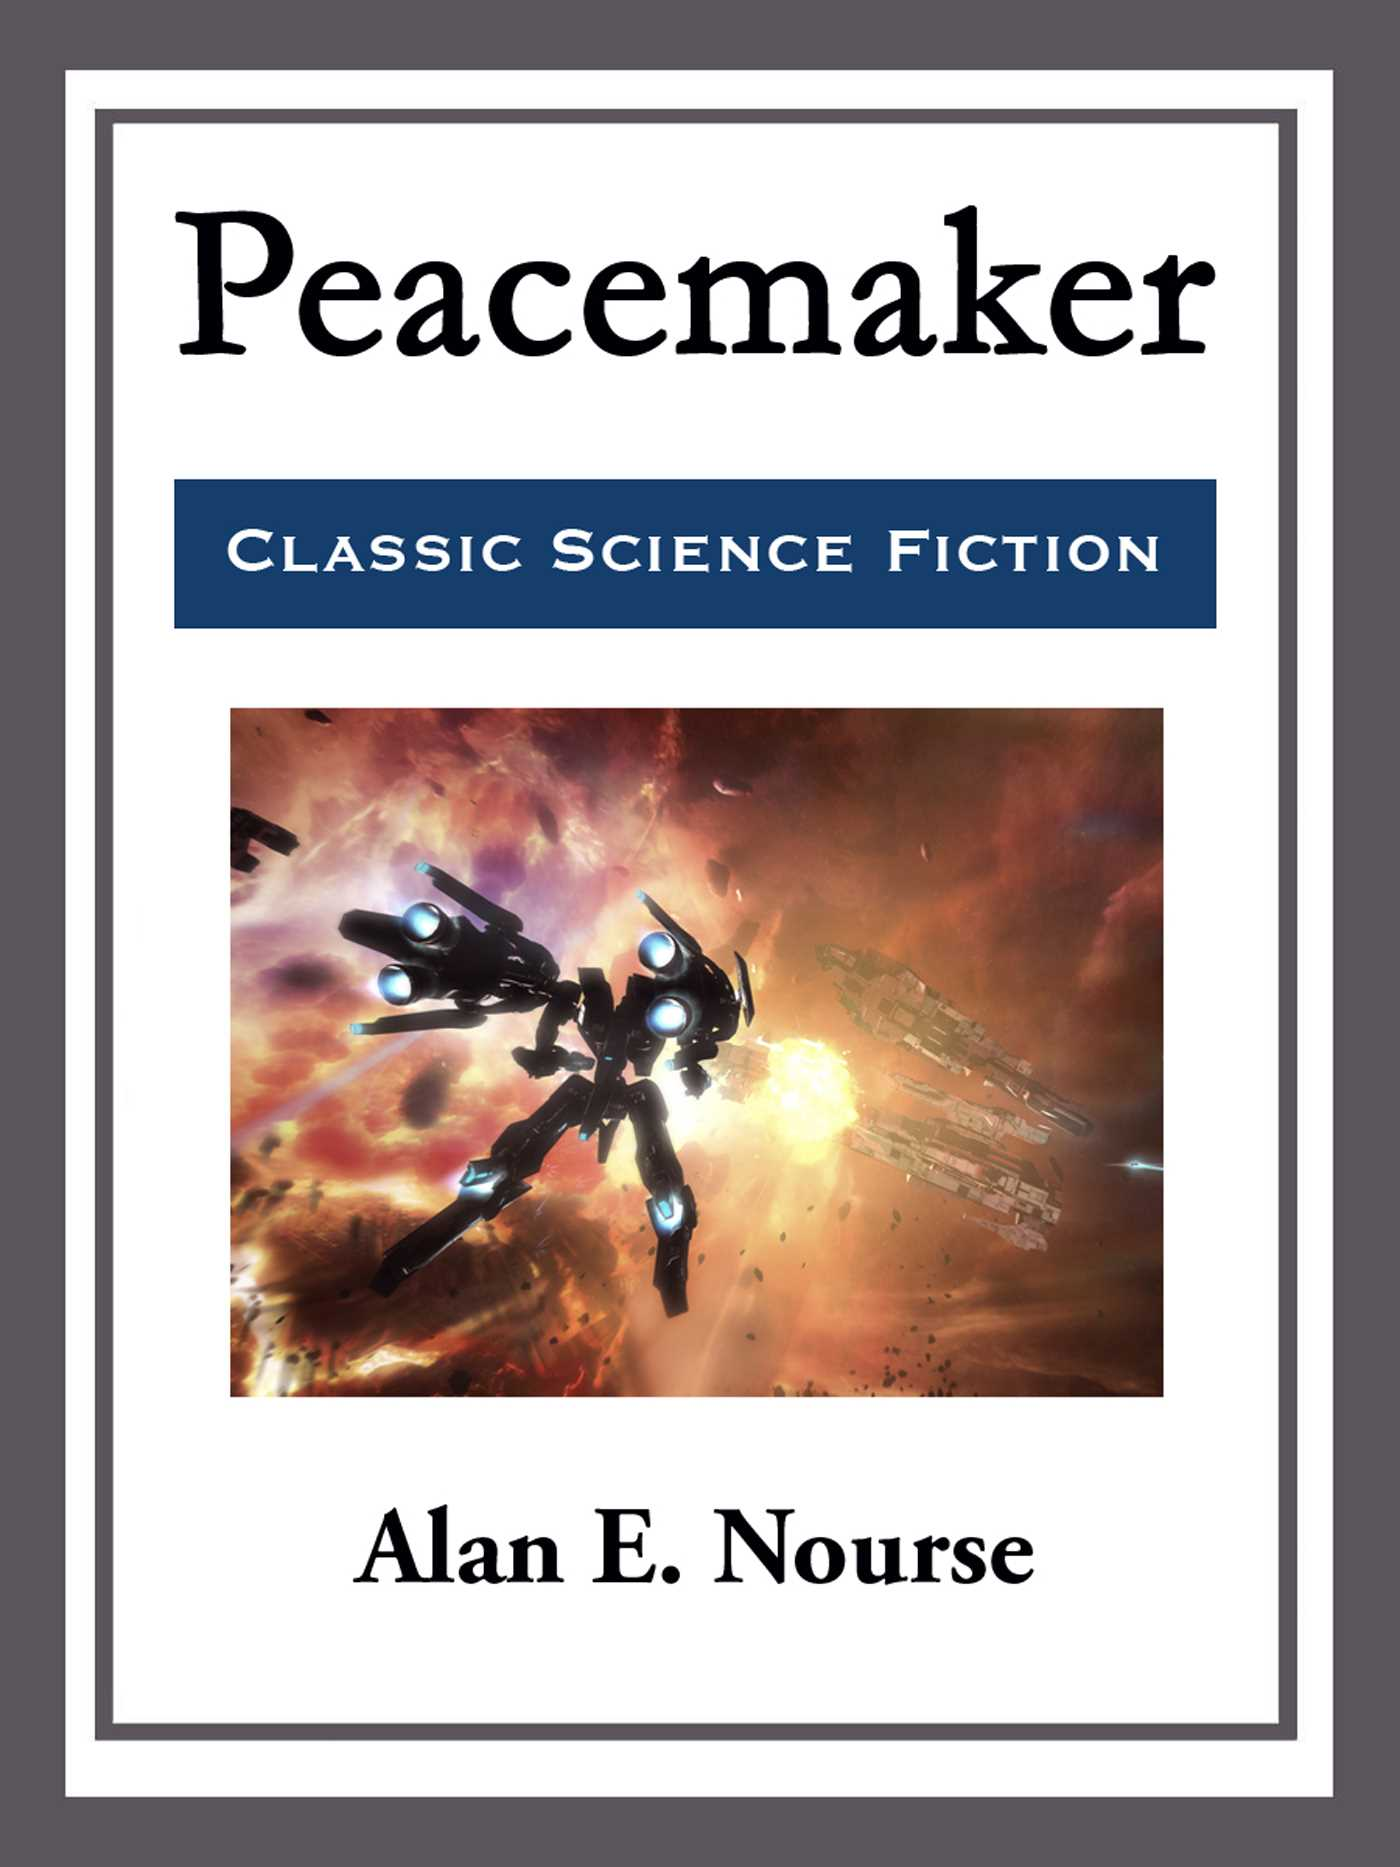 a summary of virus invaders by alan e nourse If you select your own book, please receive prior approval by e-mailing me at crawfordk@jcschoolsorg robert c gallo virus invaders, the, alan e nourse.